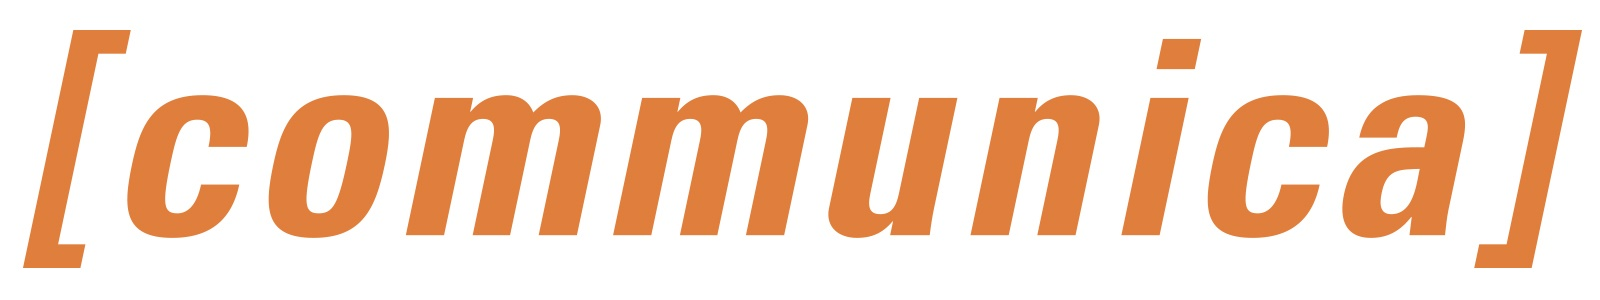 Communica_Logo_Orange_XL.jpg